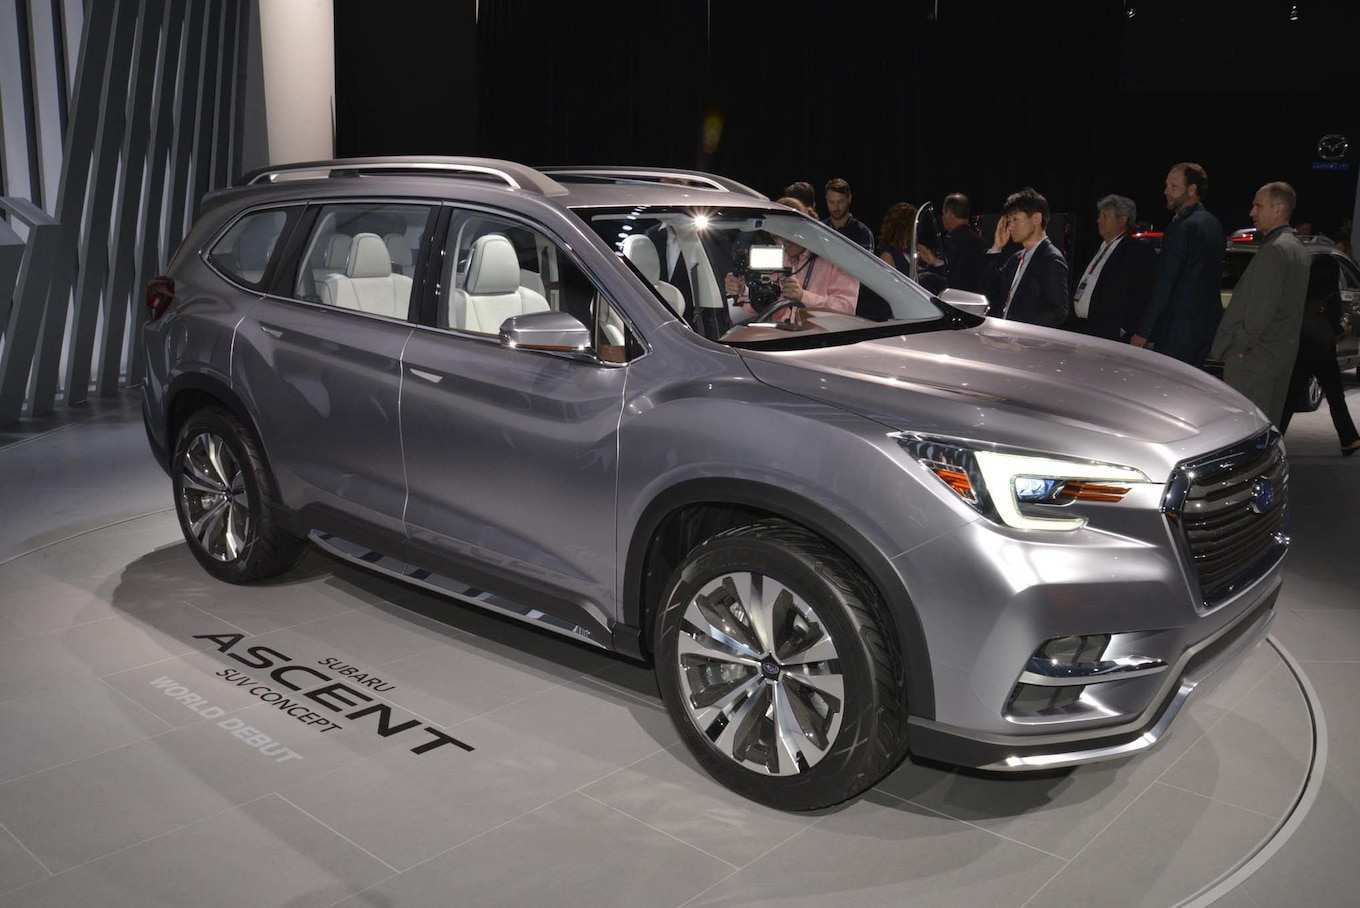 85 All New 2019 Subaru Ascent Debut Research New with 2019 Subaru Ascent Debut